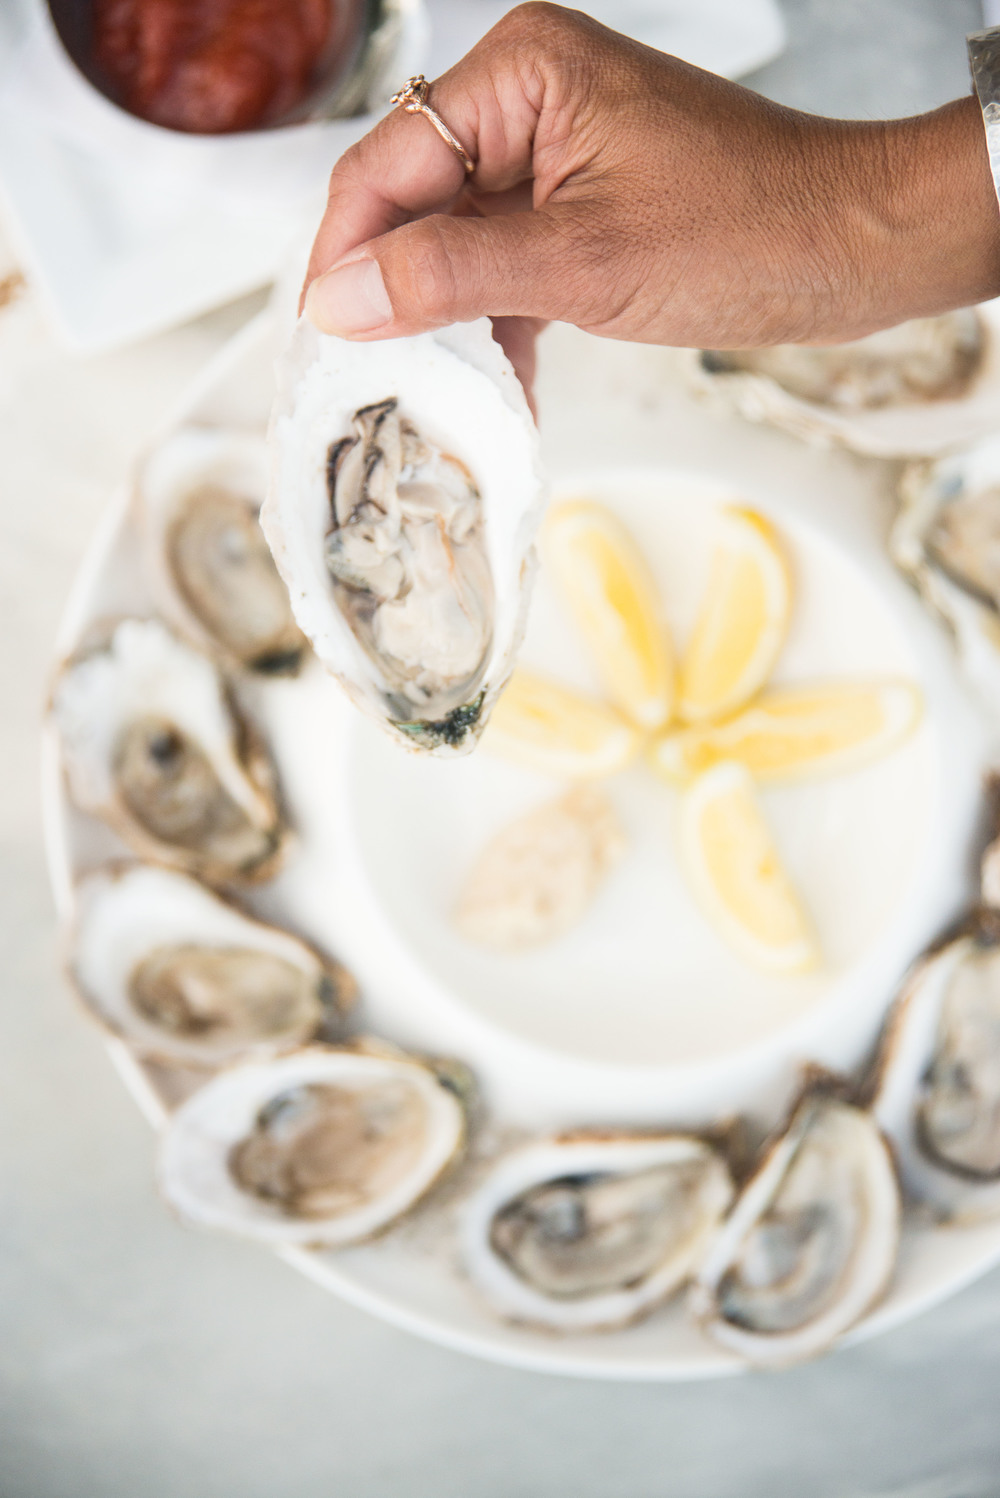 Oysters from Coastal Provisions .... deeeeelicious!